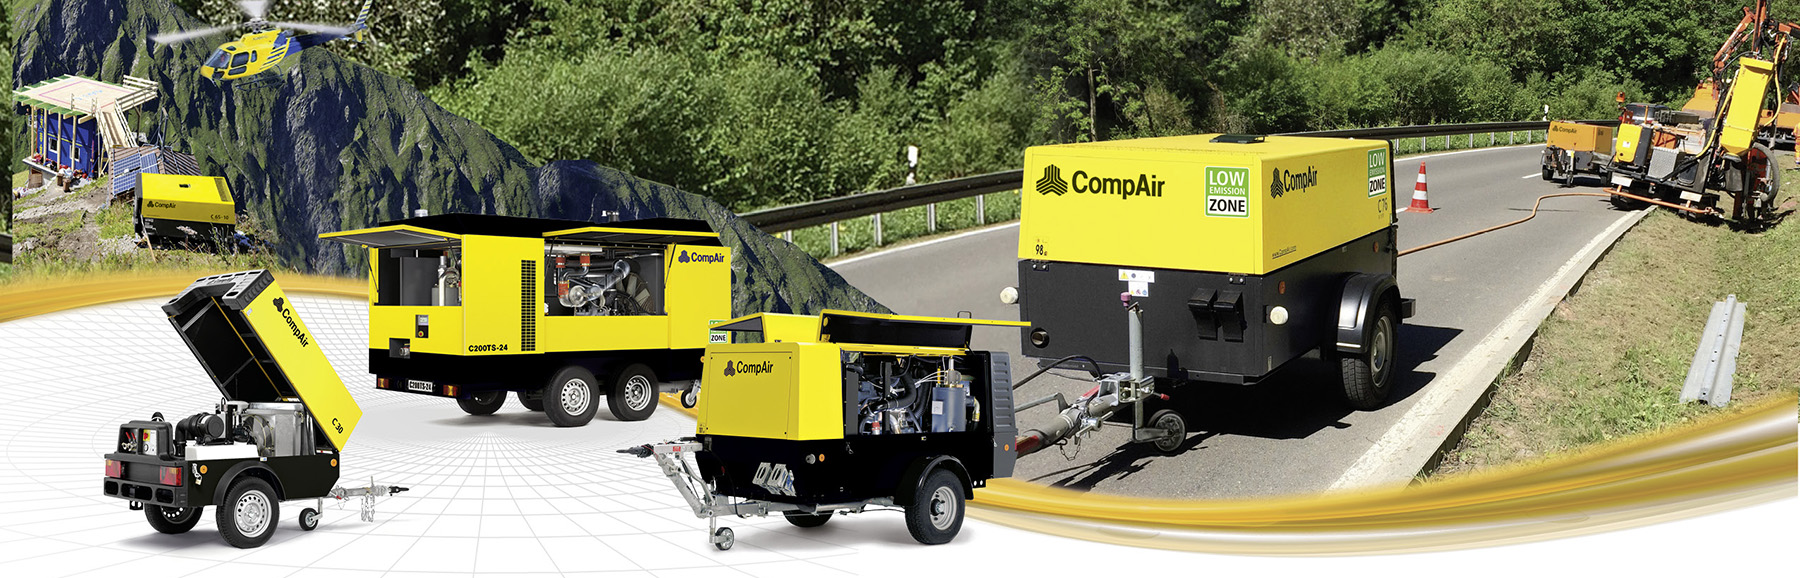 Towable compressors page header